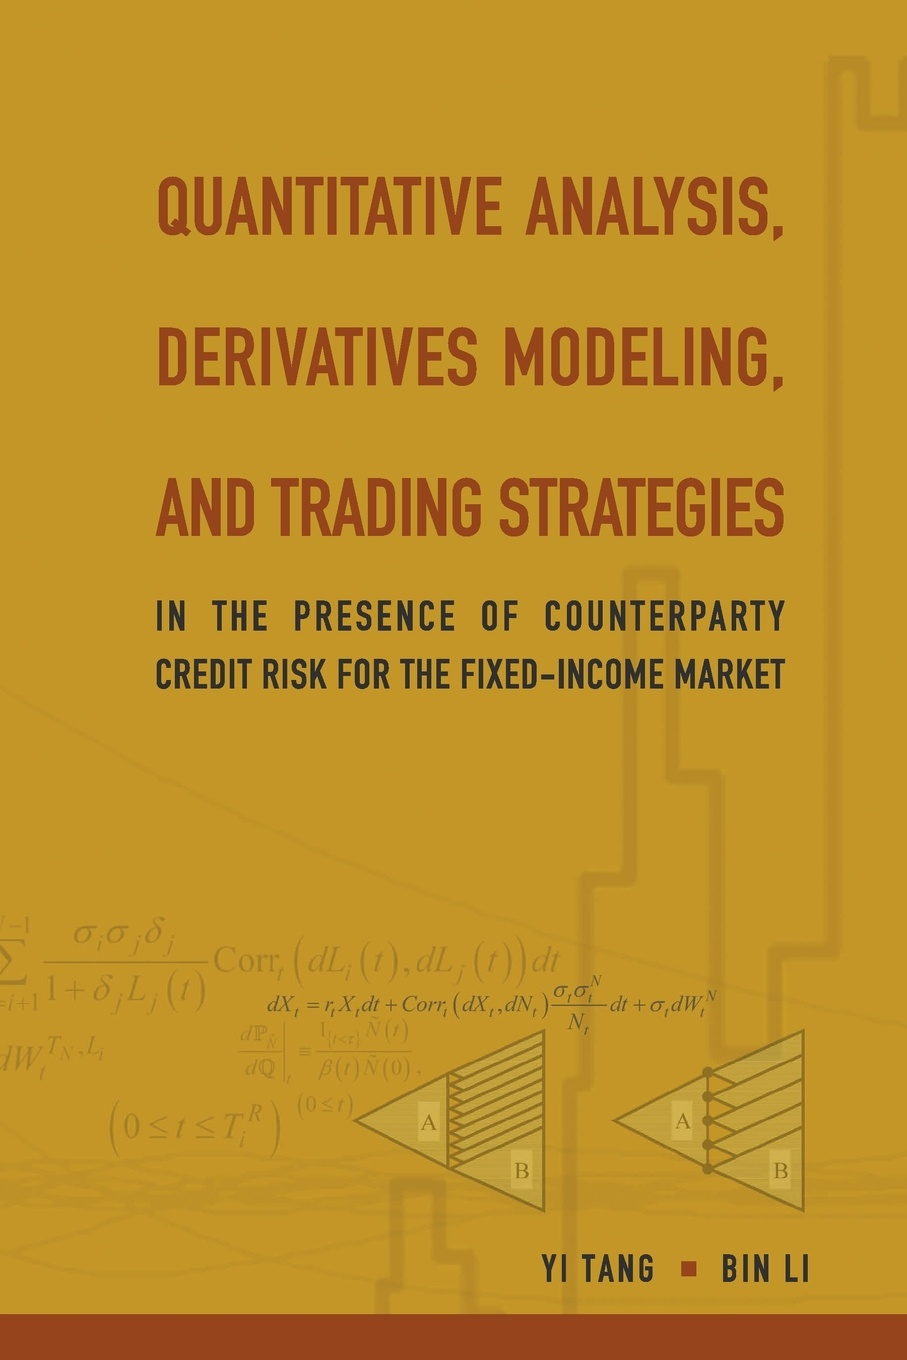 Yi Tang, Bin Li QUANTITATIVE ANALYSIS, DERIVATIVES MODELING, AND TRADING STRATEGIES. IN THE PRESENCE OF COUNTERPARTY CREDIT RISK FOR THE FIXED-INCOME MARKET geoff chaplin credit derivatives trading investing and risk management